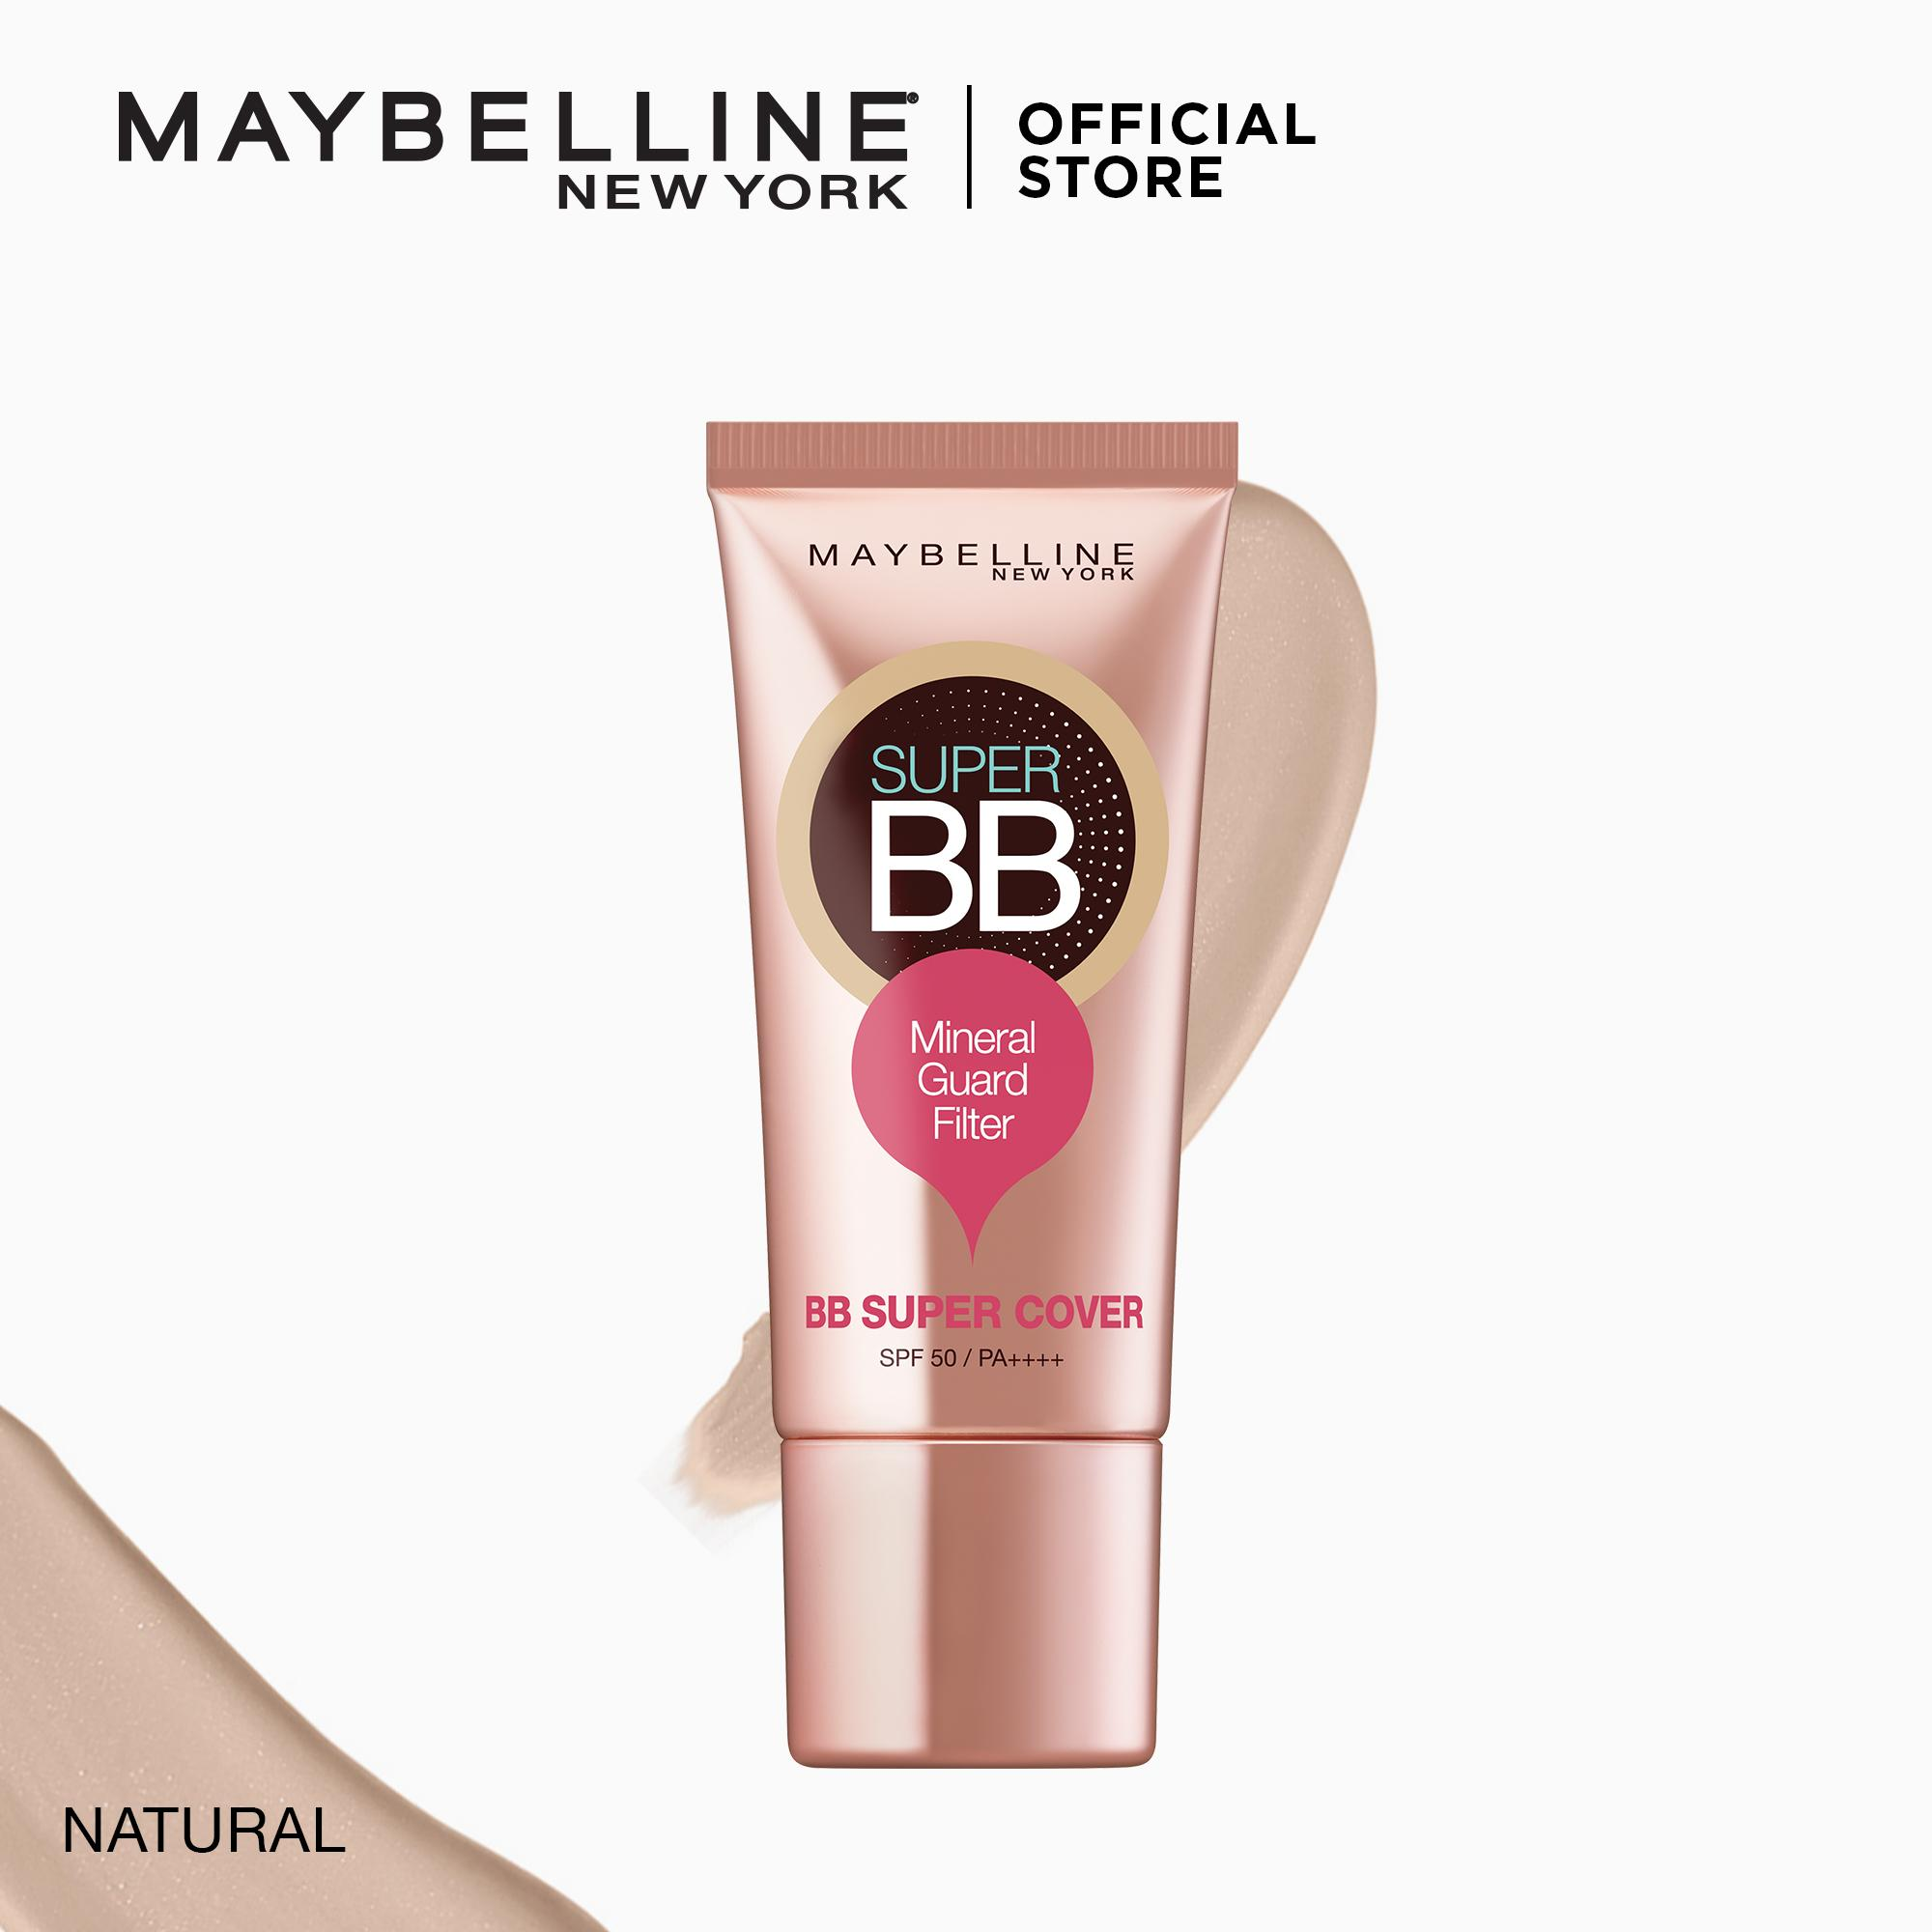 Bb And Cc Cream Brands Face Control On Sale Prices Set Natural Maybelline Super 30 Ml